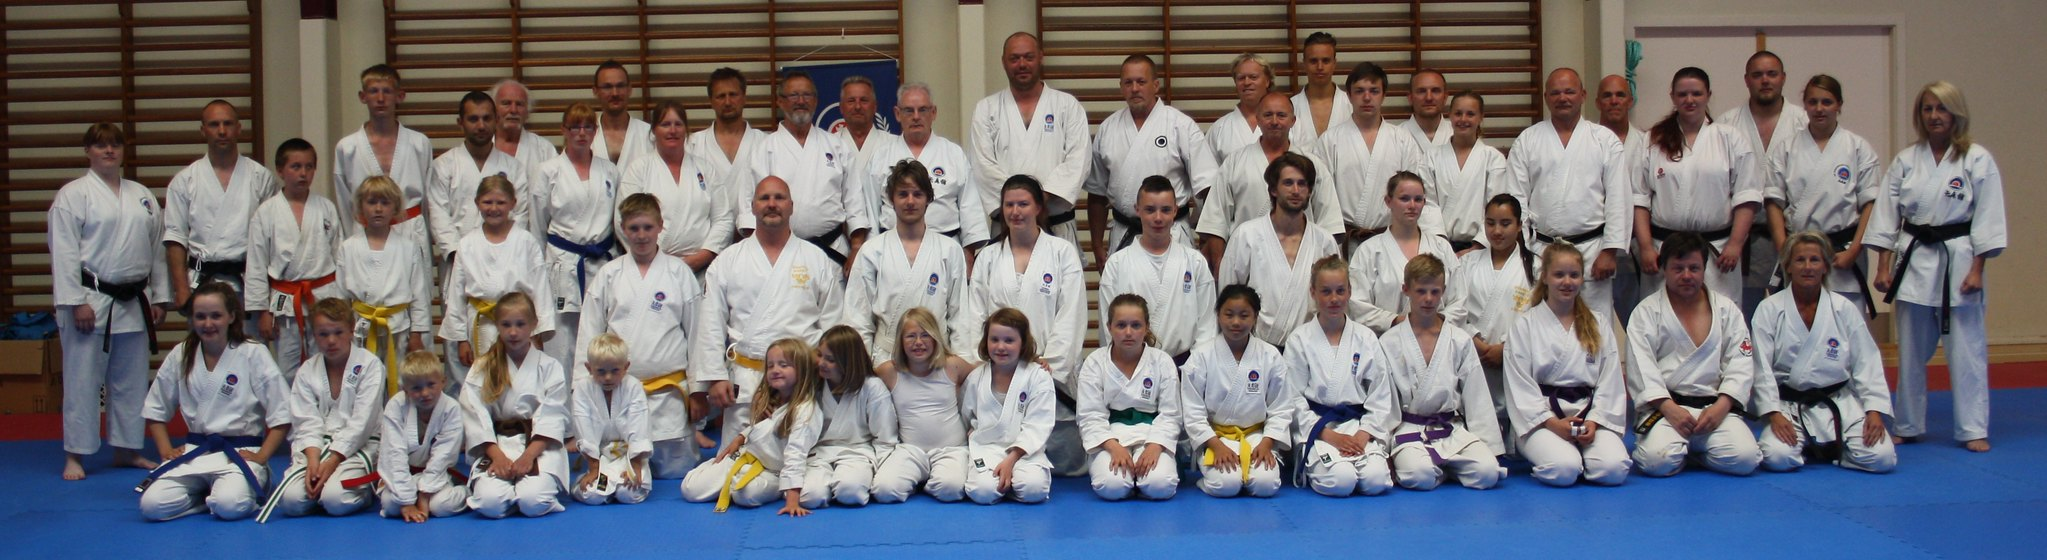 Karate-Dojo Lübeck e.V. | Flickr